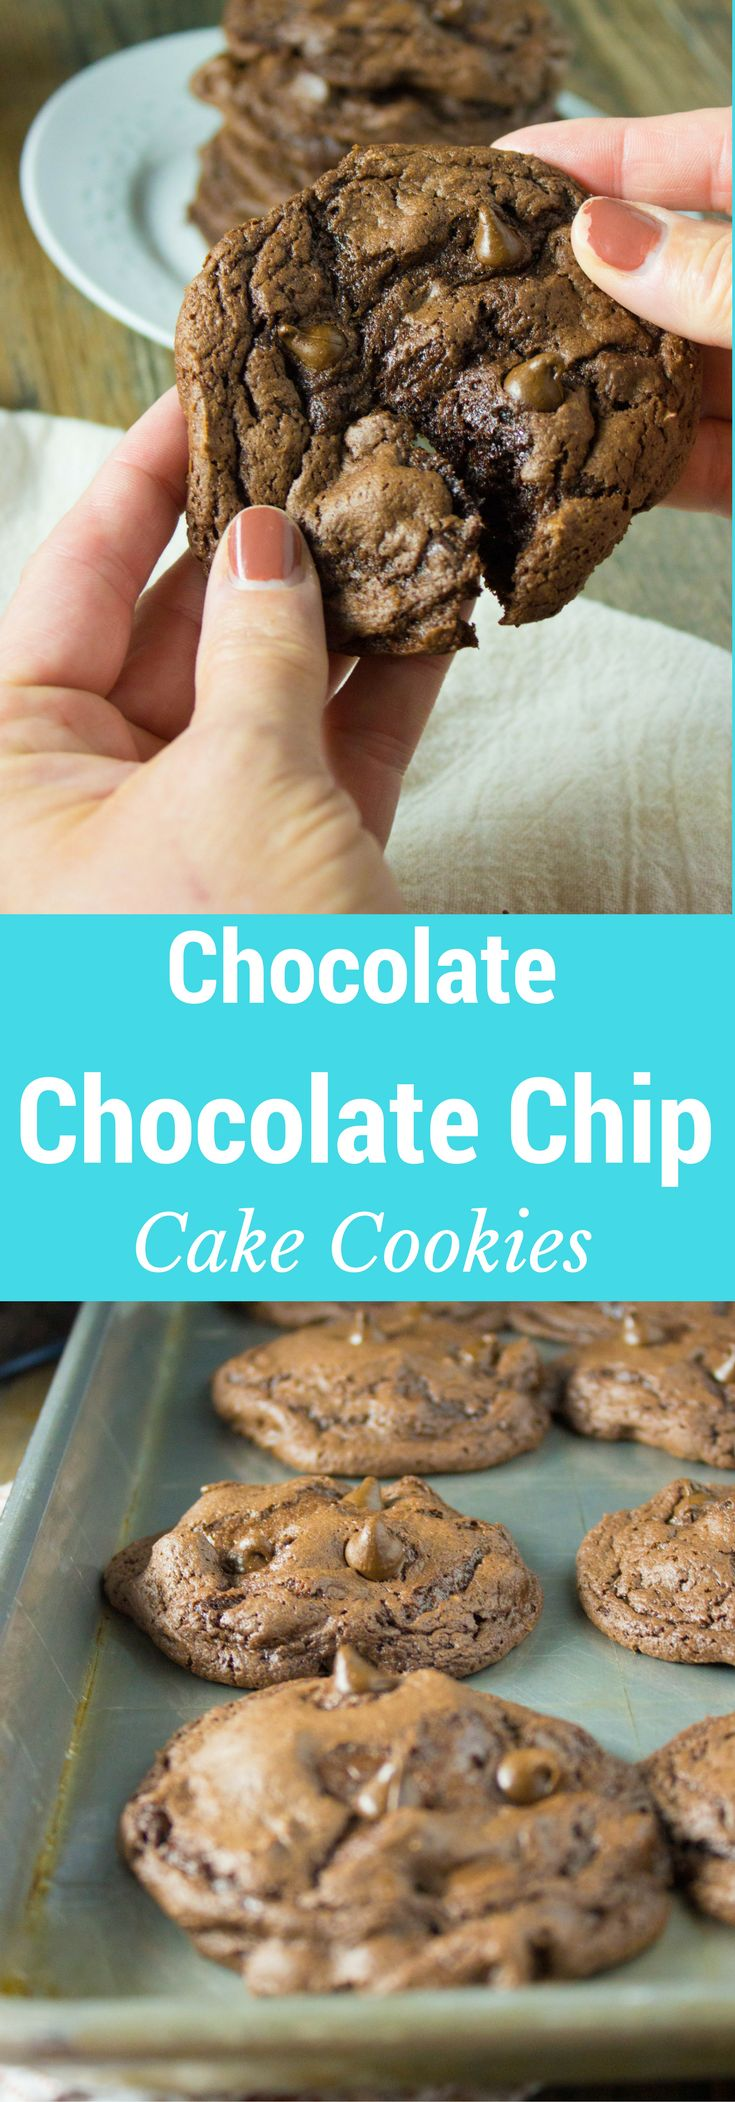 These soft and decadent cookies are #chocolatefordays and are super easy to whip up using a boxed cake mix!